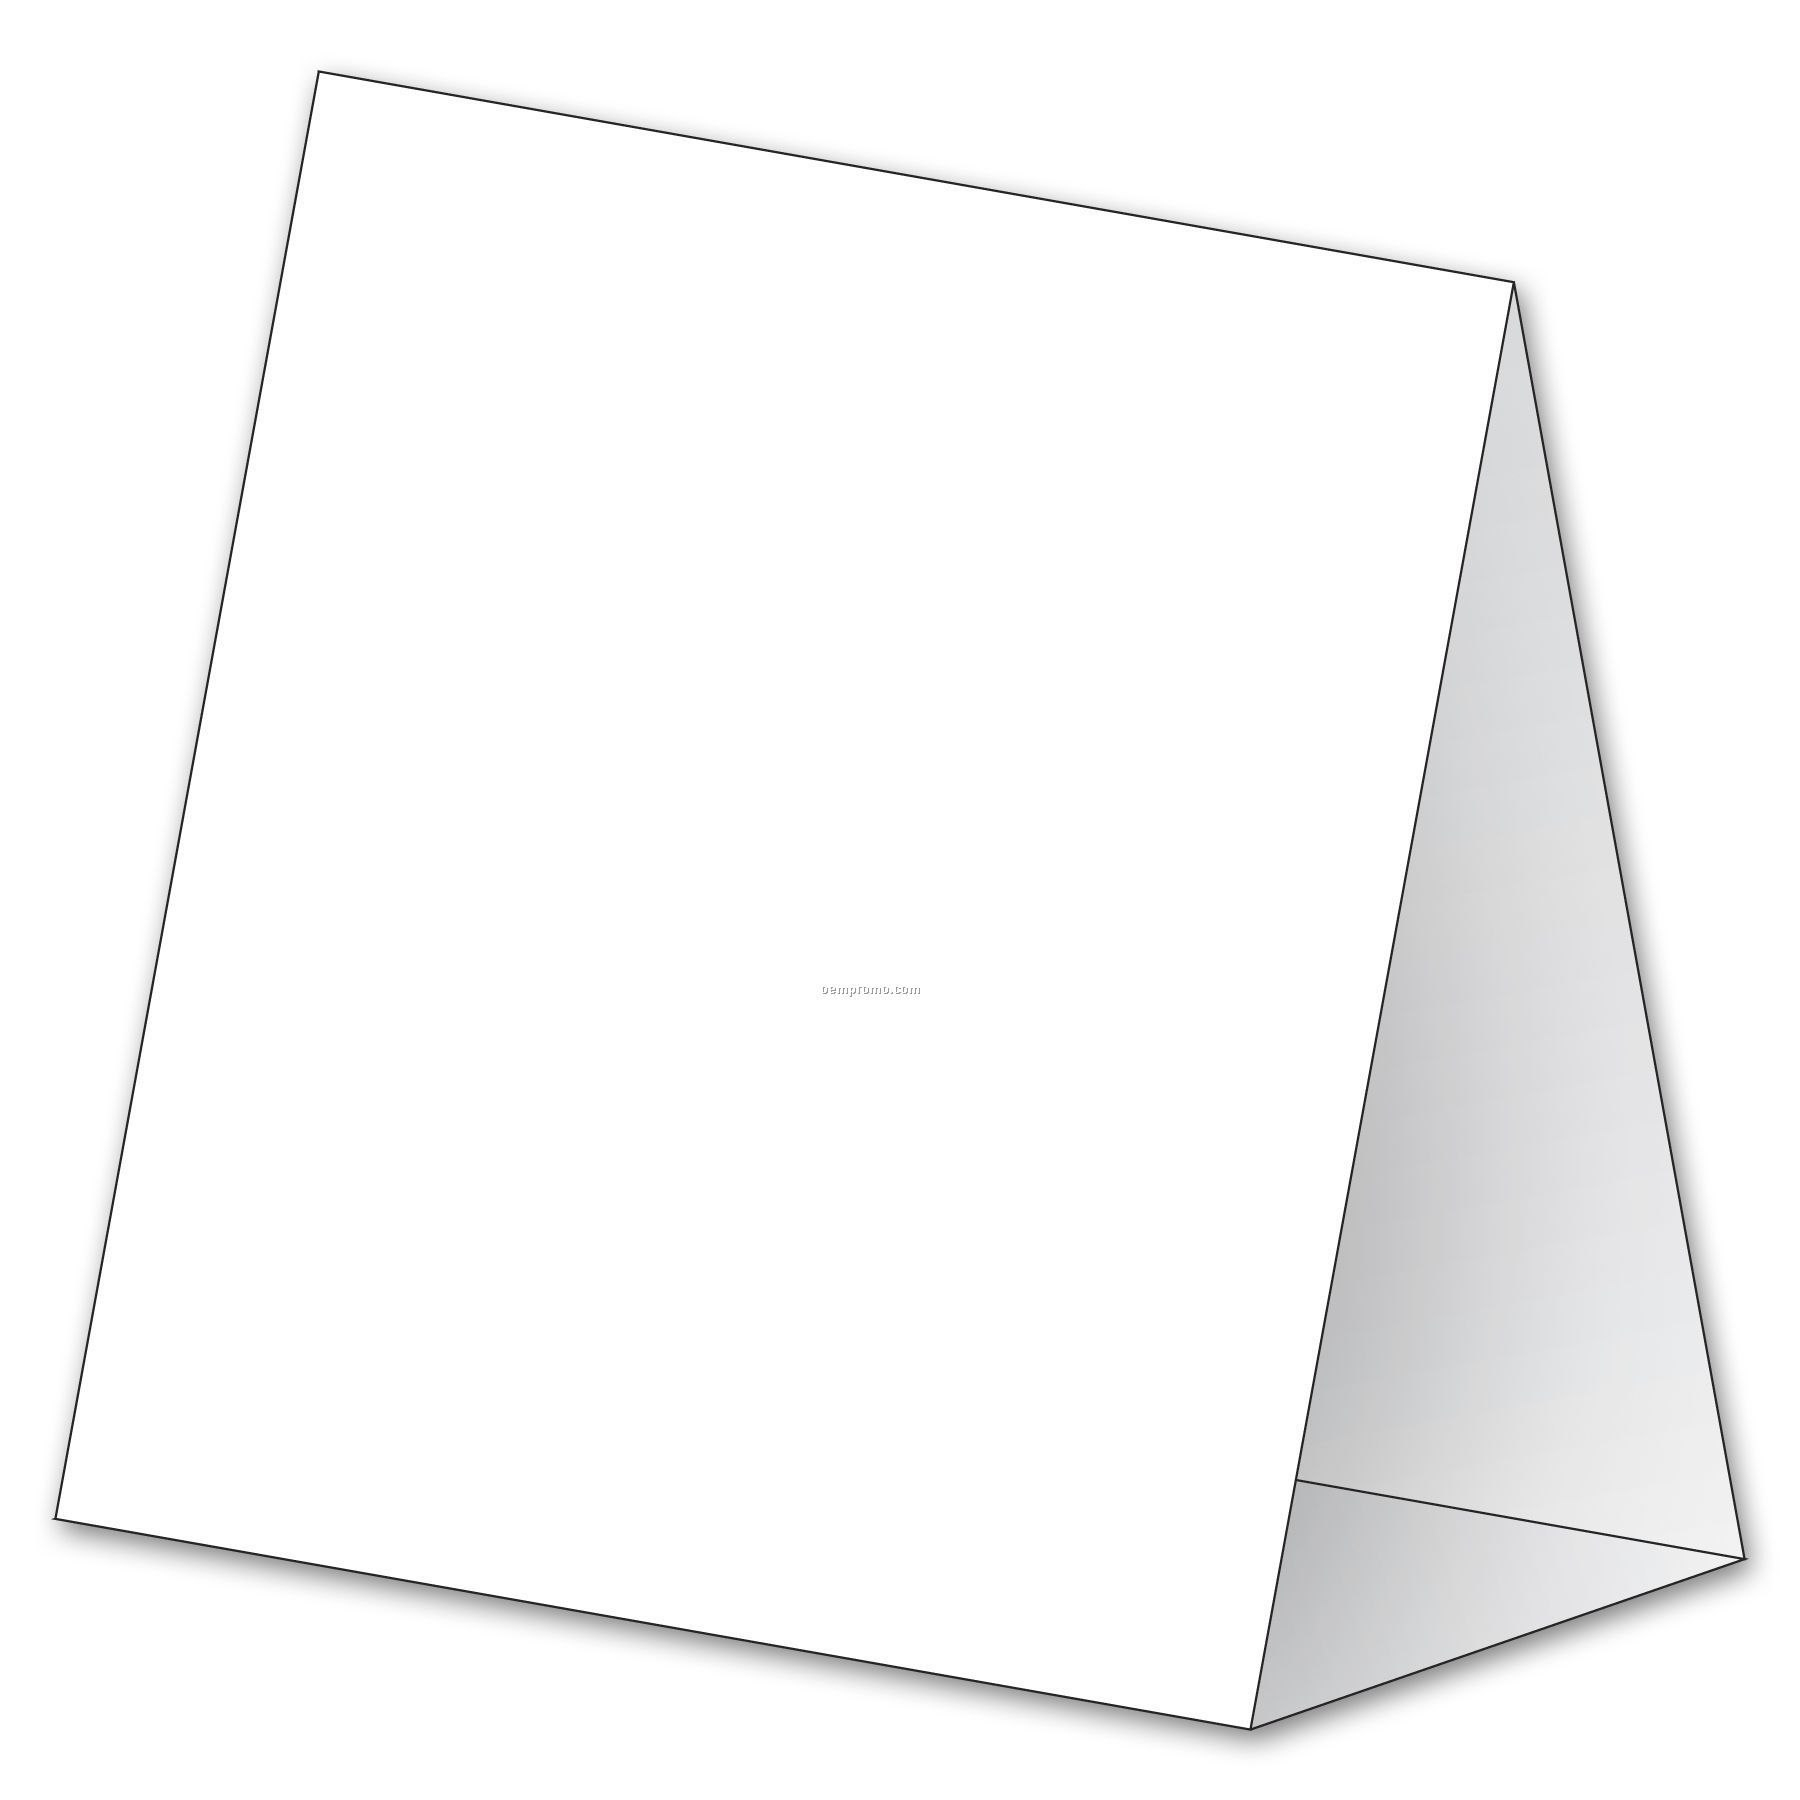 Blank Place Card Template Free Tent Table Cards Networkuk Net With Regard To Blank Tent Card Template